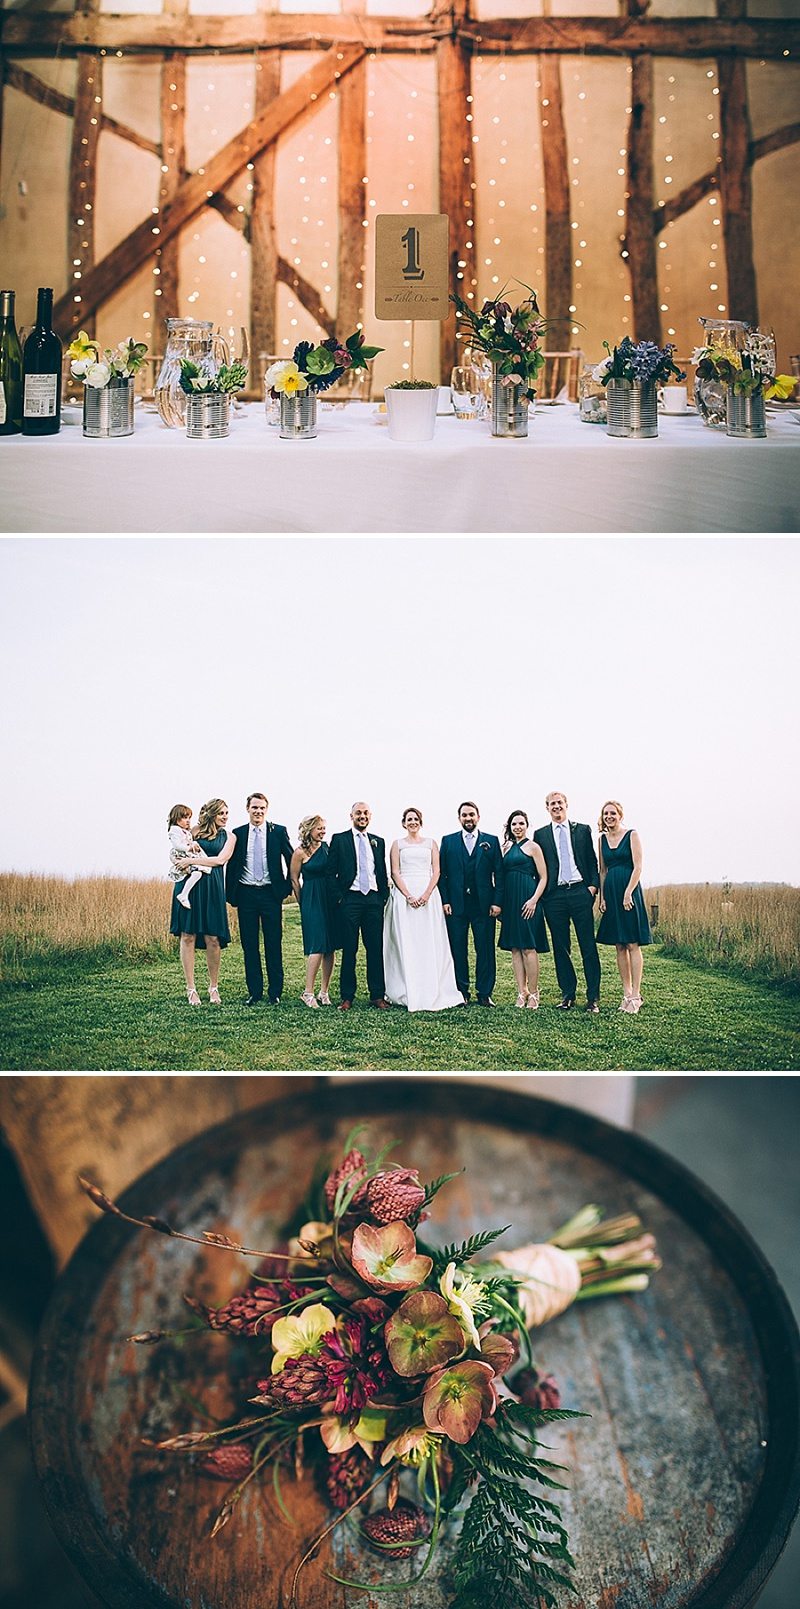 A wedding at Alpheton Hall Barns in Suffolk with a Jesus Peiro ballgown dress navy bridesmaids and DIY_0160